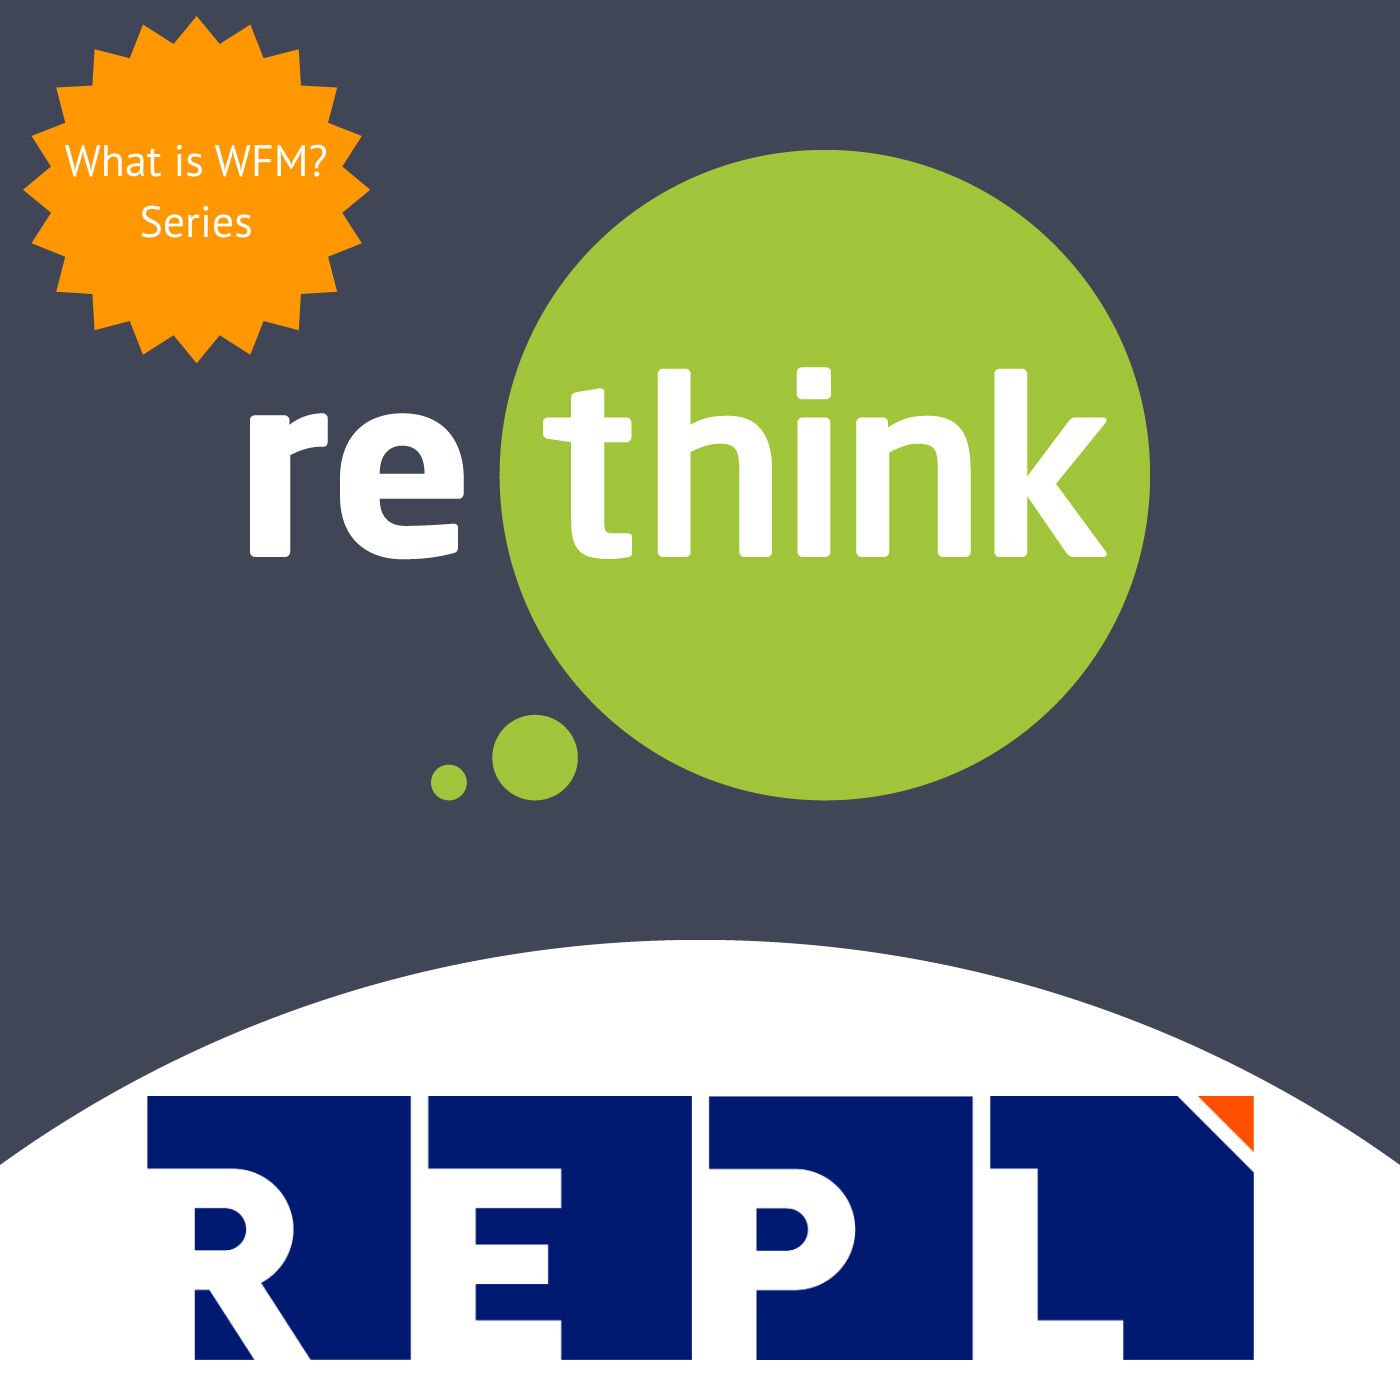 ReThink & REPL - How does WFM differ across the World?